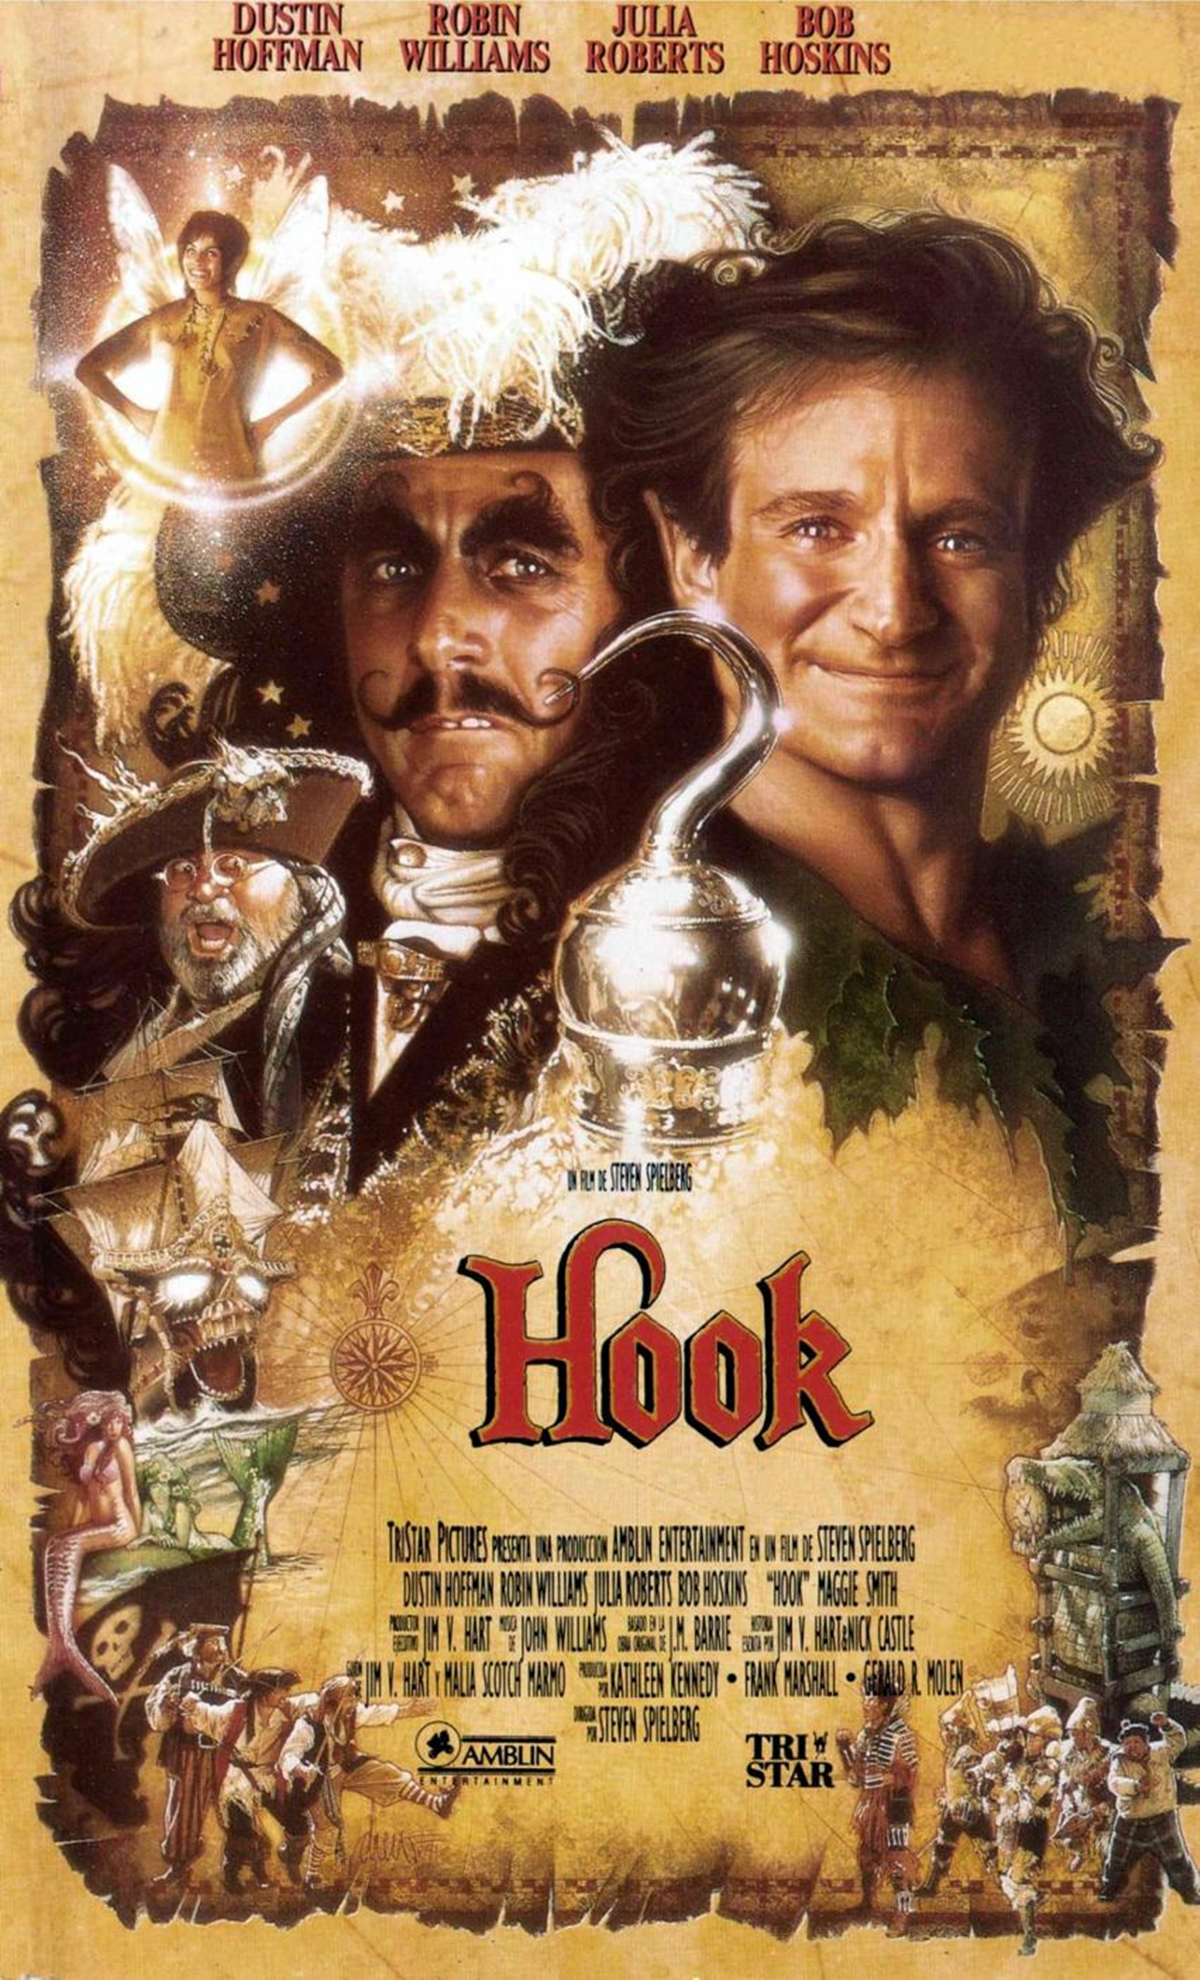 POSTER 10 Things You Probably Didn't Know About Hook